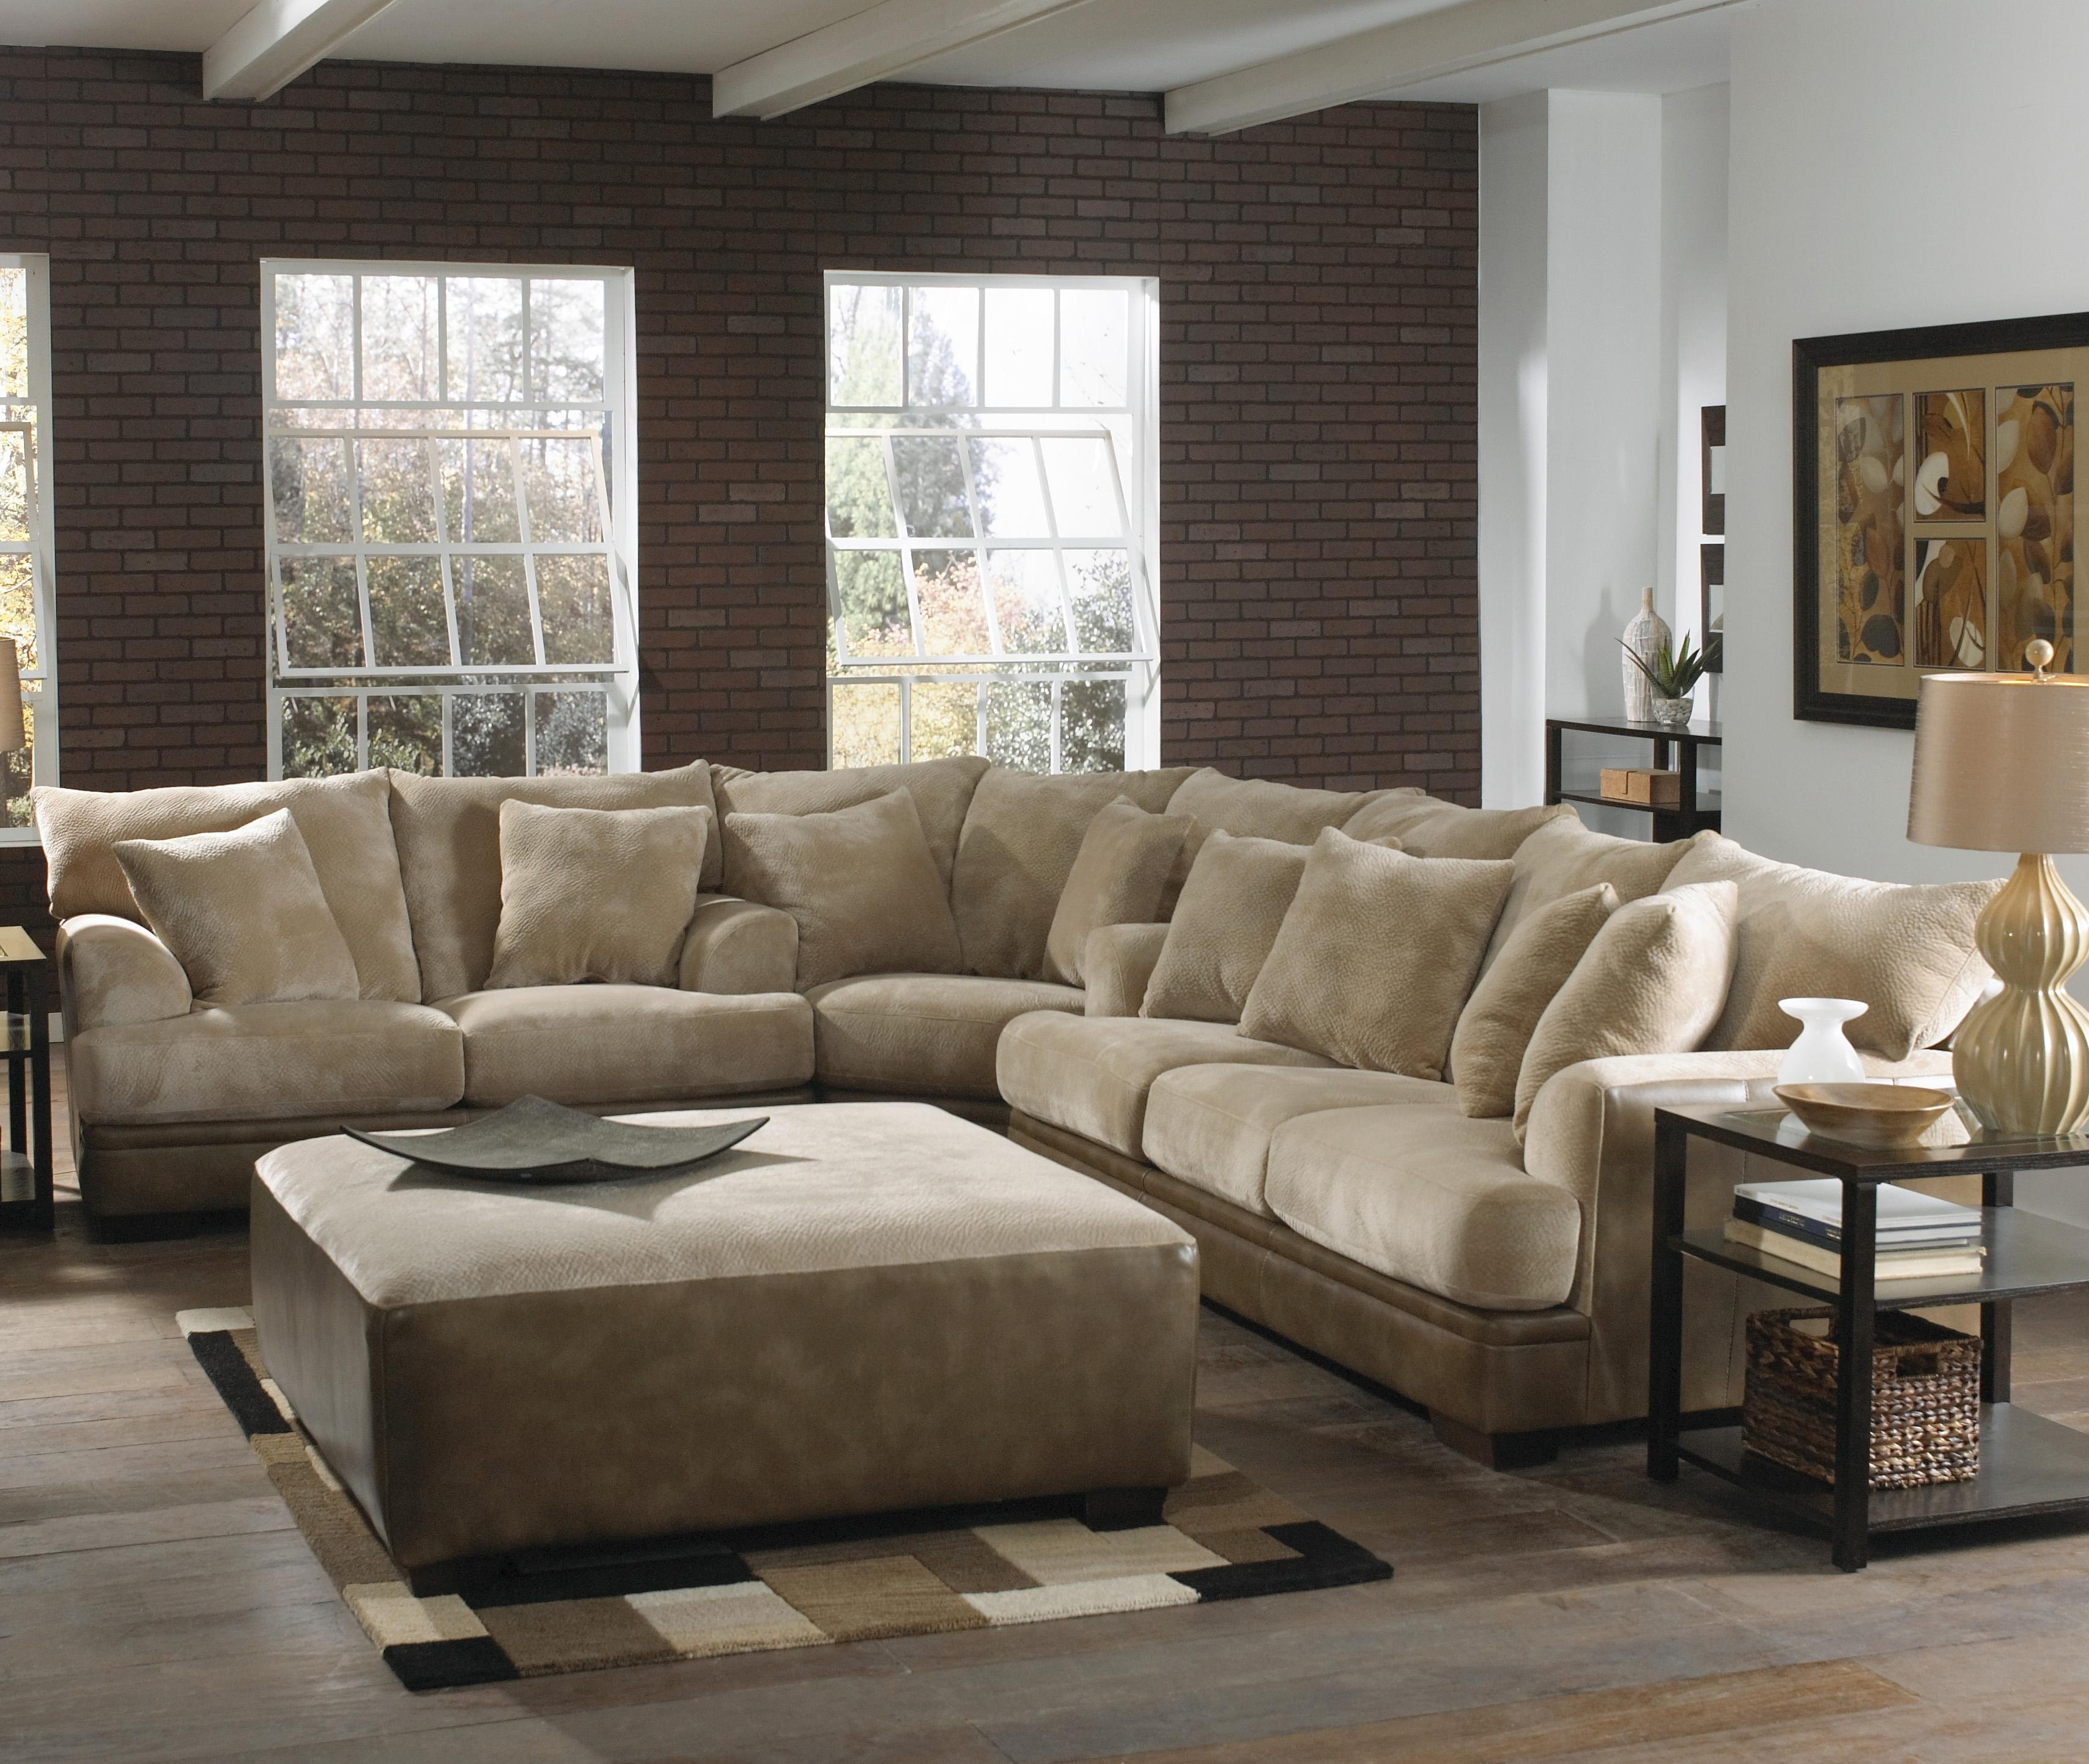 Fashionable Marvelous Large Sectional Sofa With Ottoman For Your Sofas Amazing For Sectional Couches With Large Ottoman (View 6 of 20)